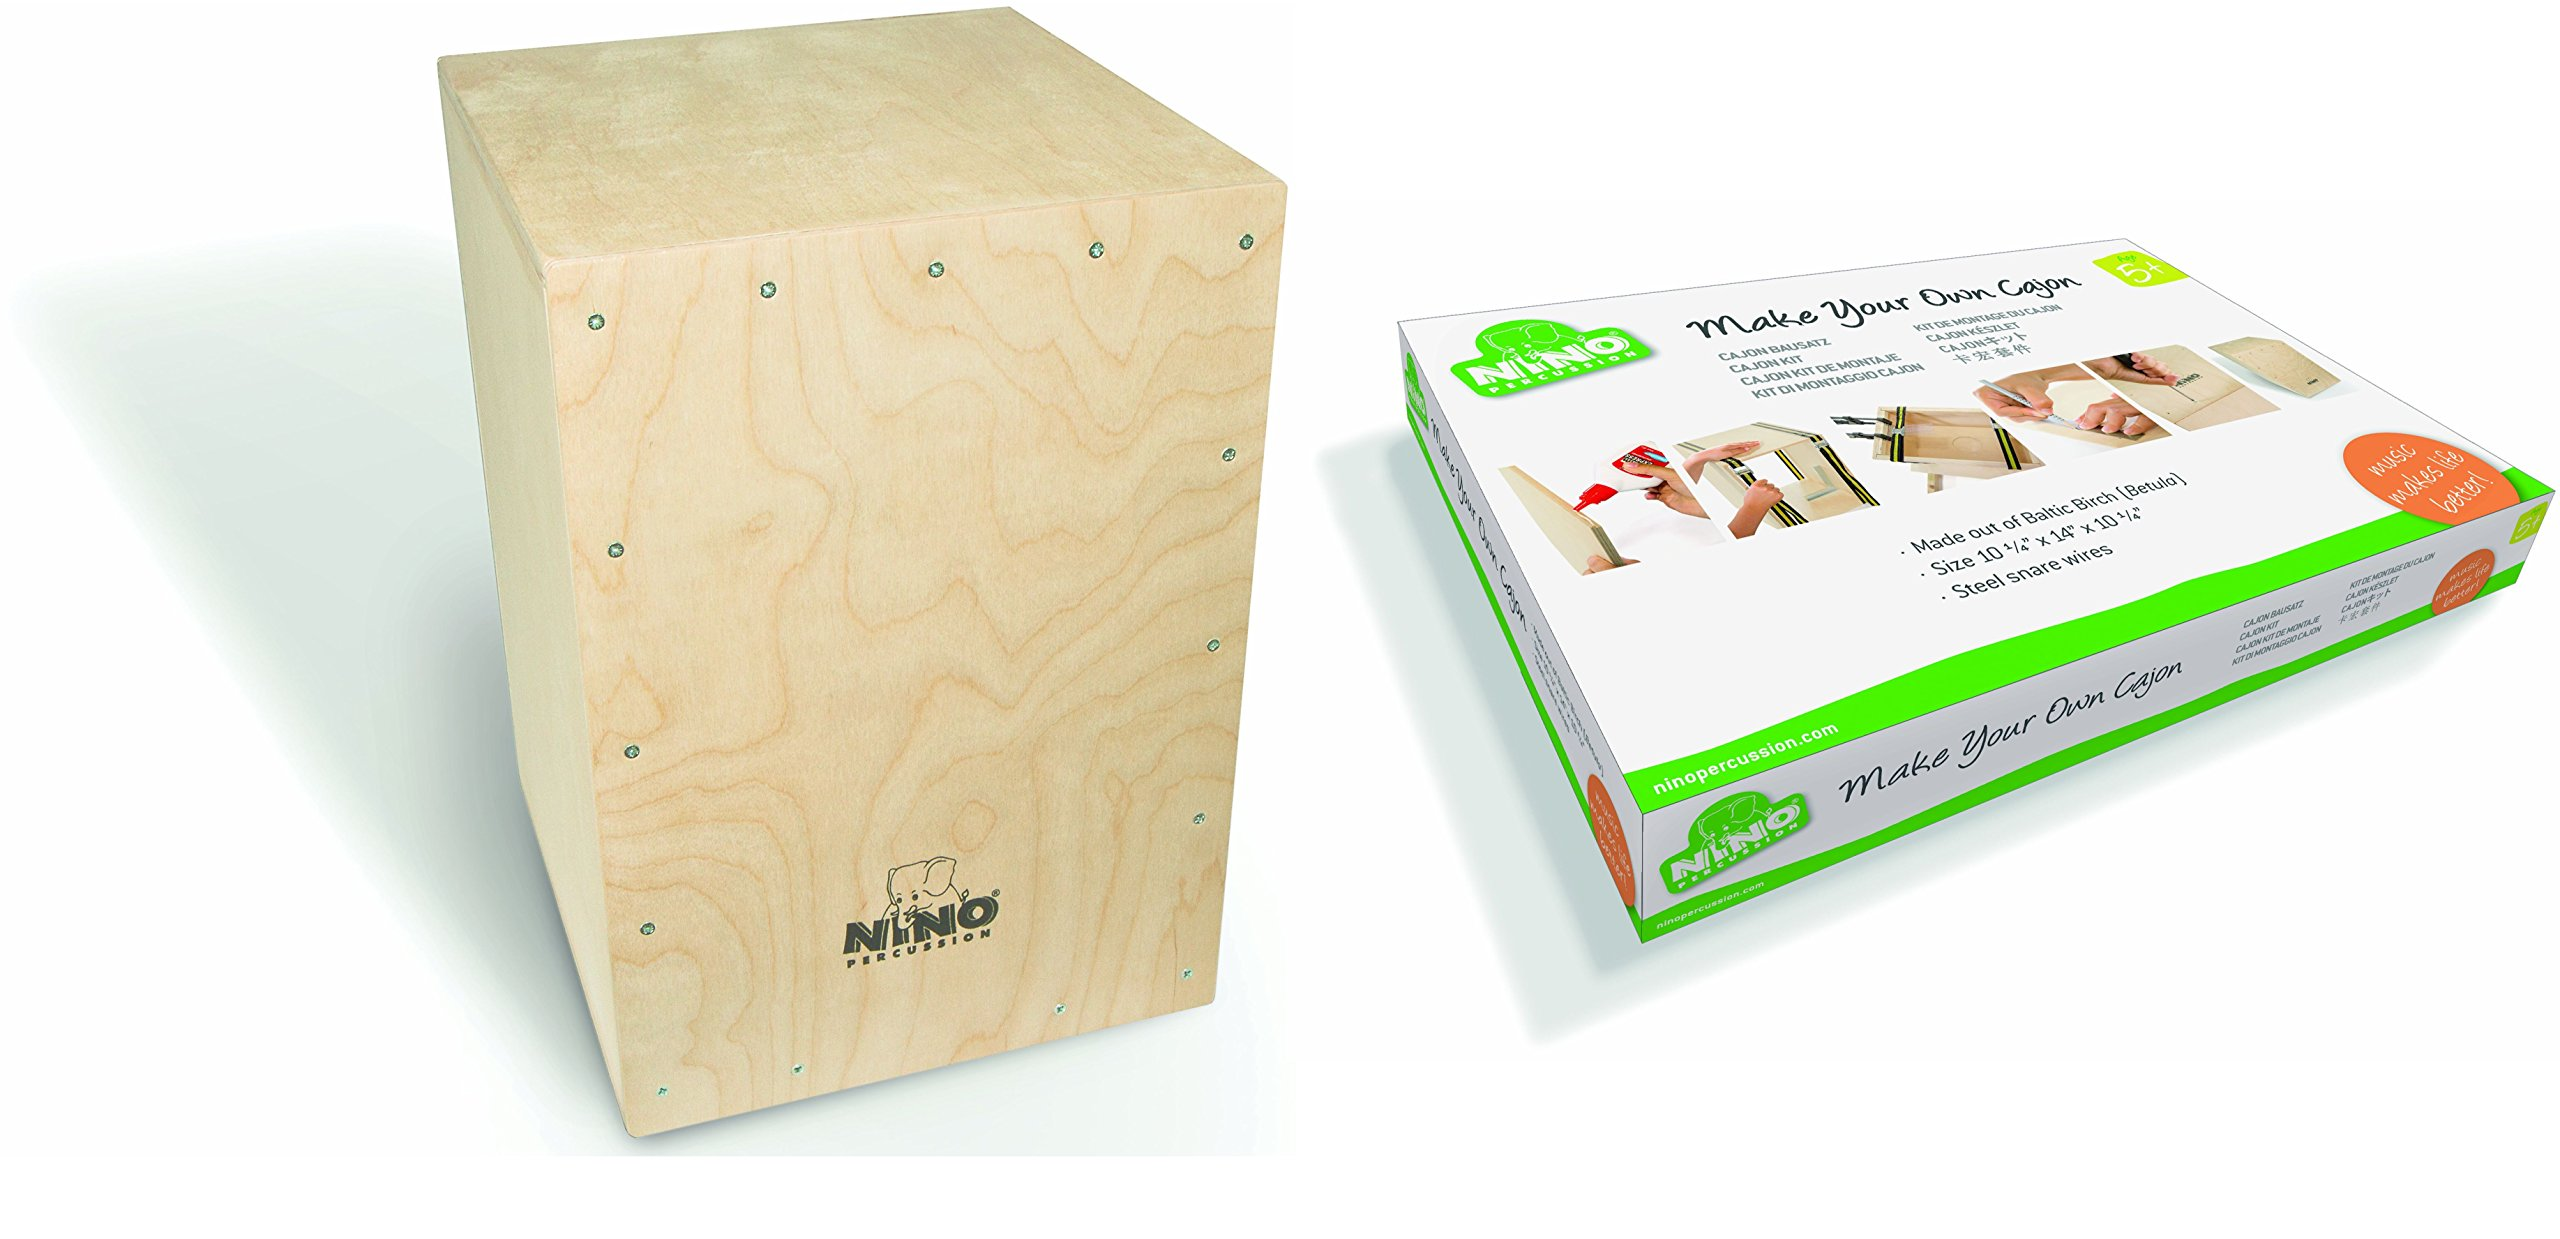 Nino Percussion Kids' Make Your Own Cajon Kit -MADE IN EUROPE - Baltic Birch Wood, Includes Easy to Follow Manual, 2-YEAR WARRANTY (Parts Only) Only), inch (NINO951-MYO)